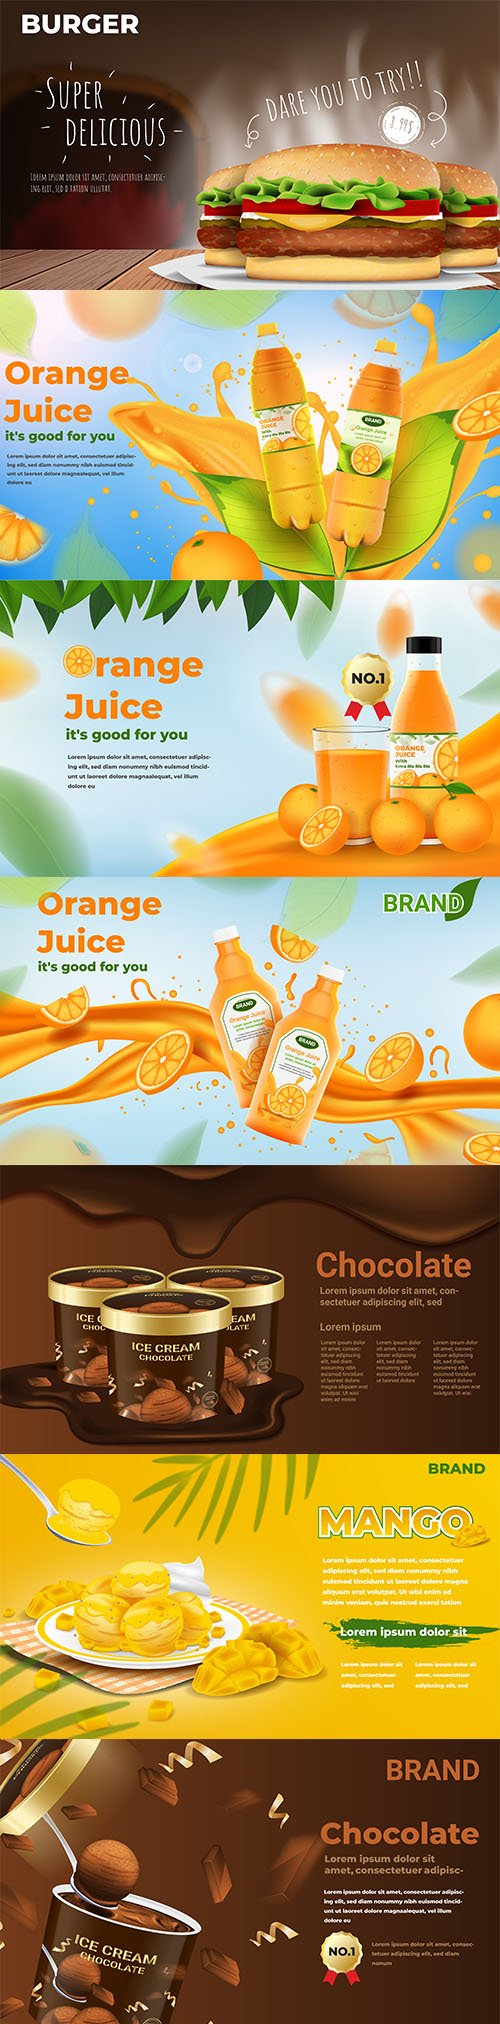 Food and Drink Illustrations